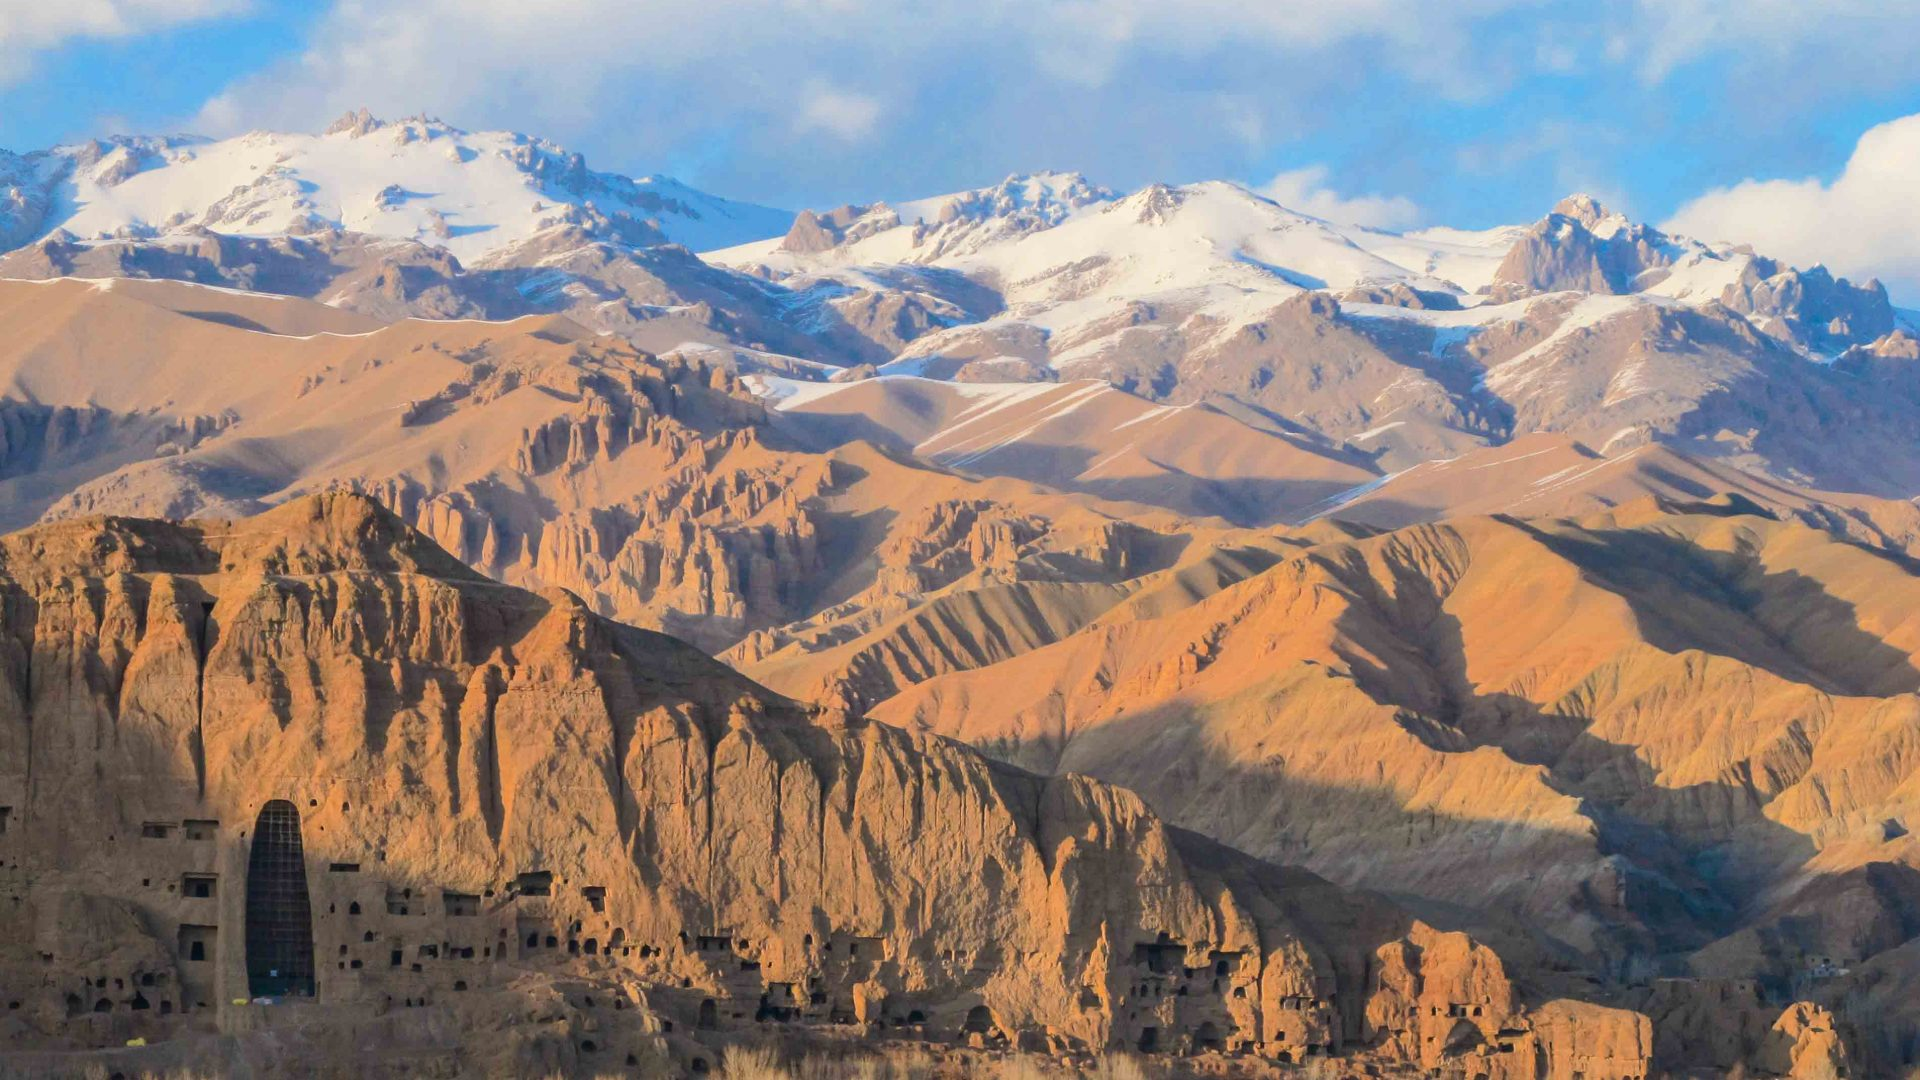 Afghanistan's arid mountains backed by snowy mountains.